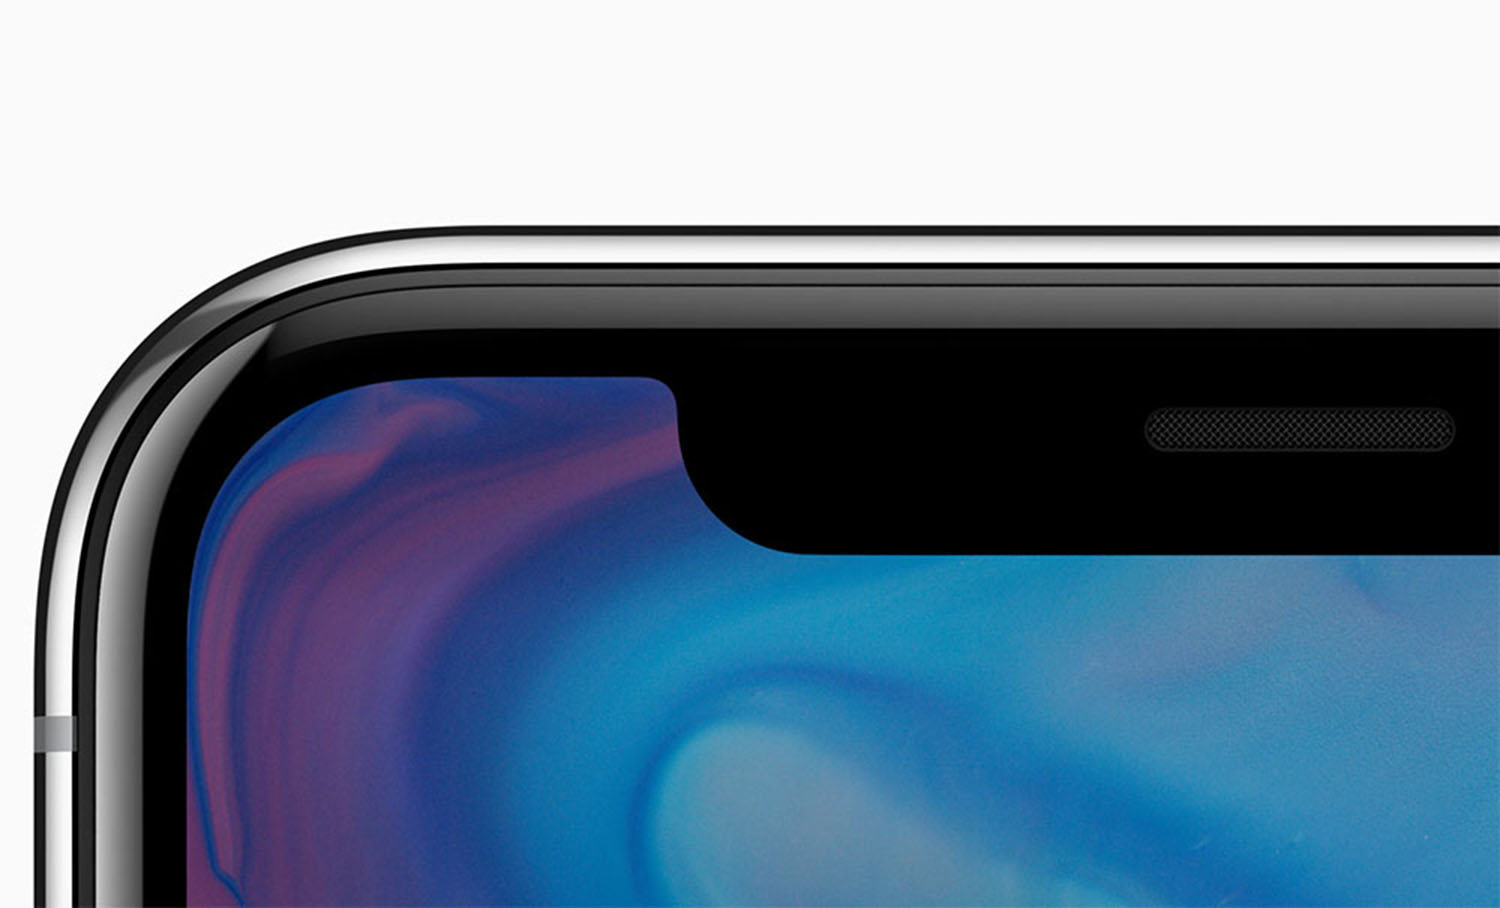 iPhone 11 Model Names With Code Numbers, OS Release Date